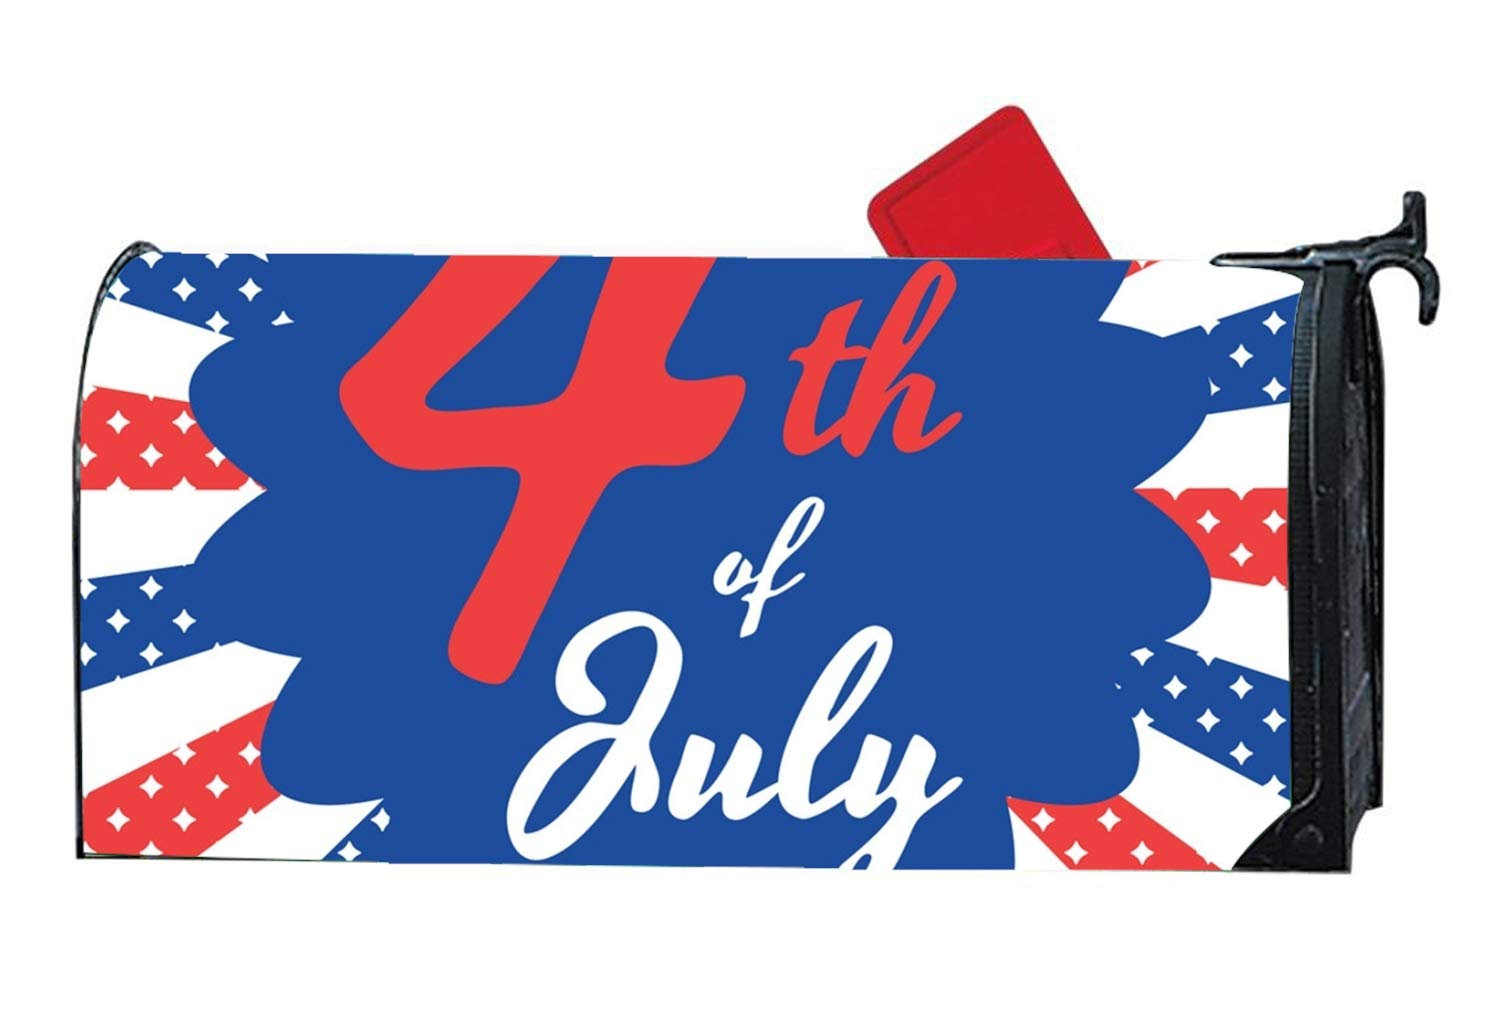 KSLIDS 4th of July Magnetic Mailbox Cover - Glowing Decorative Vintage Mailbox Wrap for Standard Size